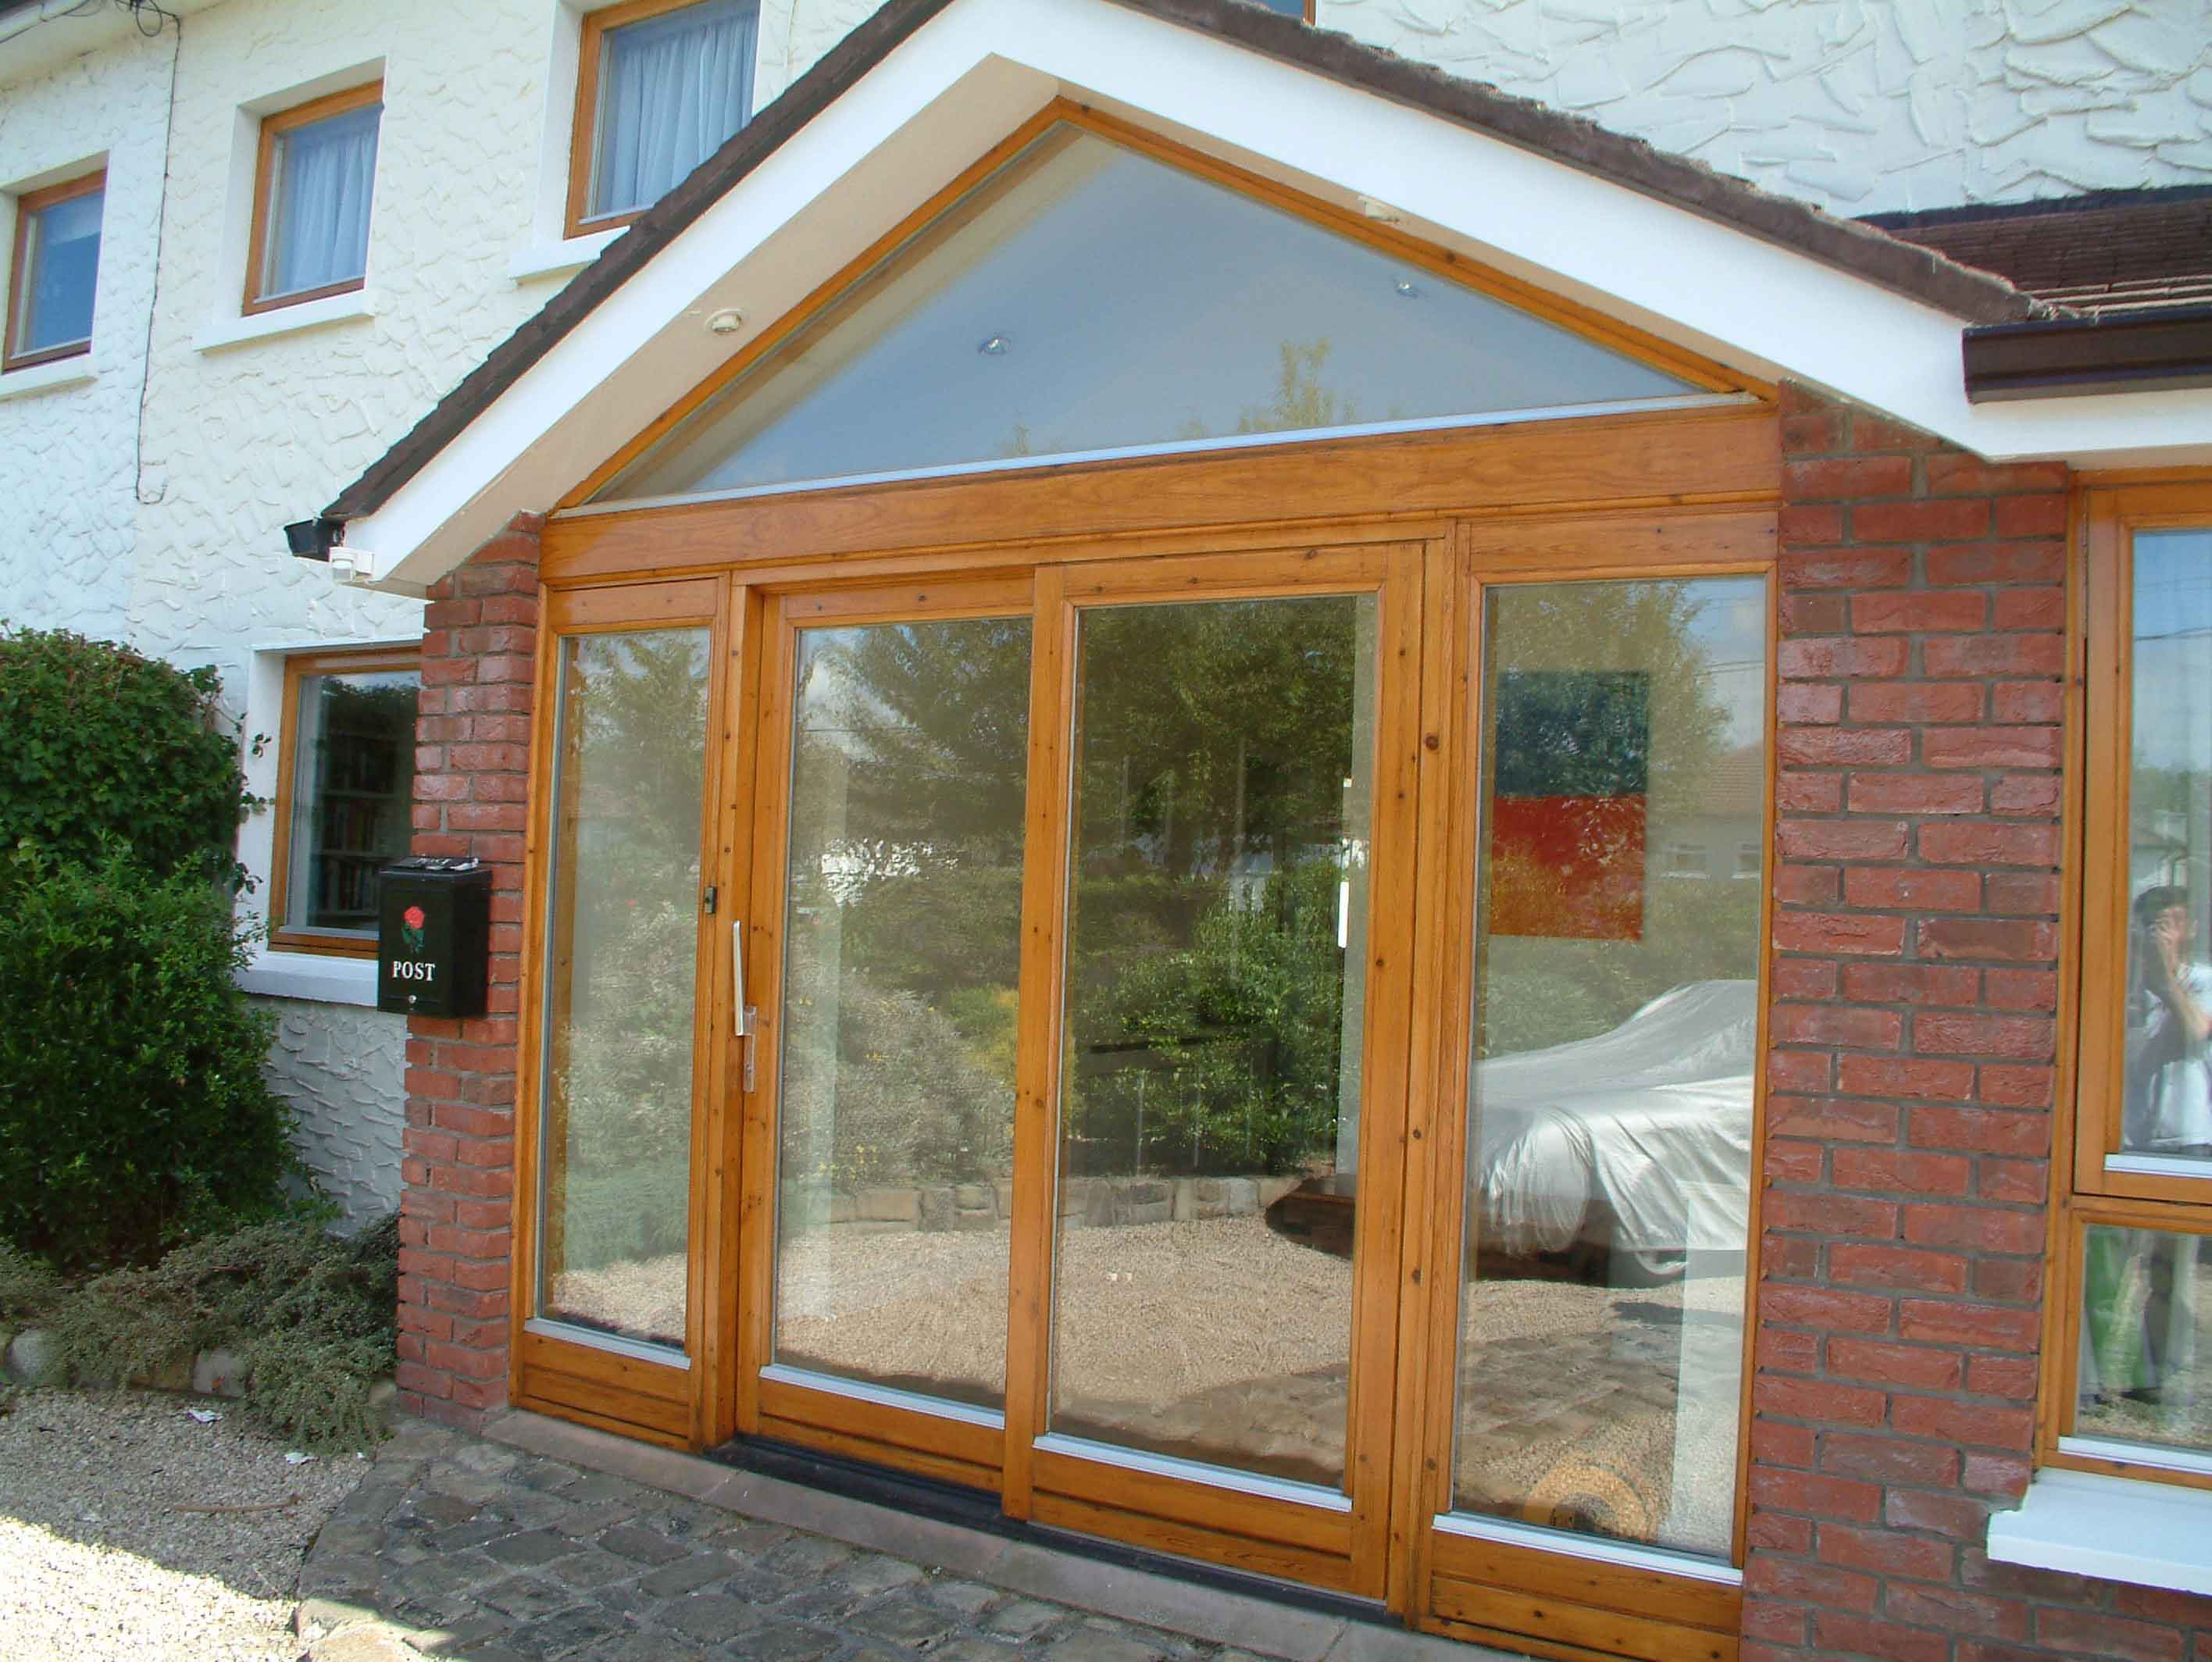 How to varnish your exterior doors and windows by Impressions Painting and Decorating in Glenageary